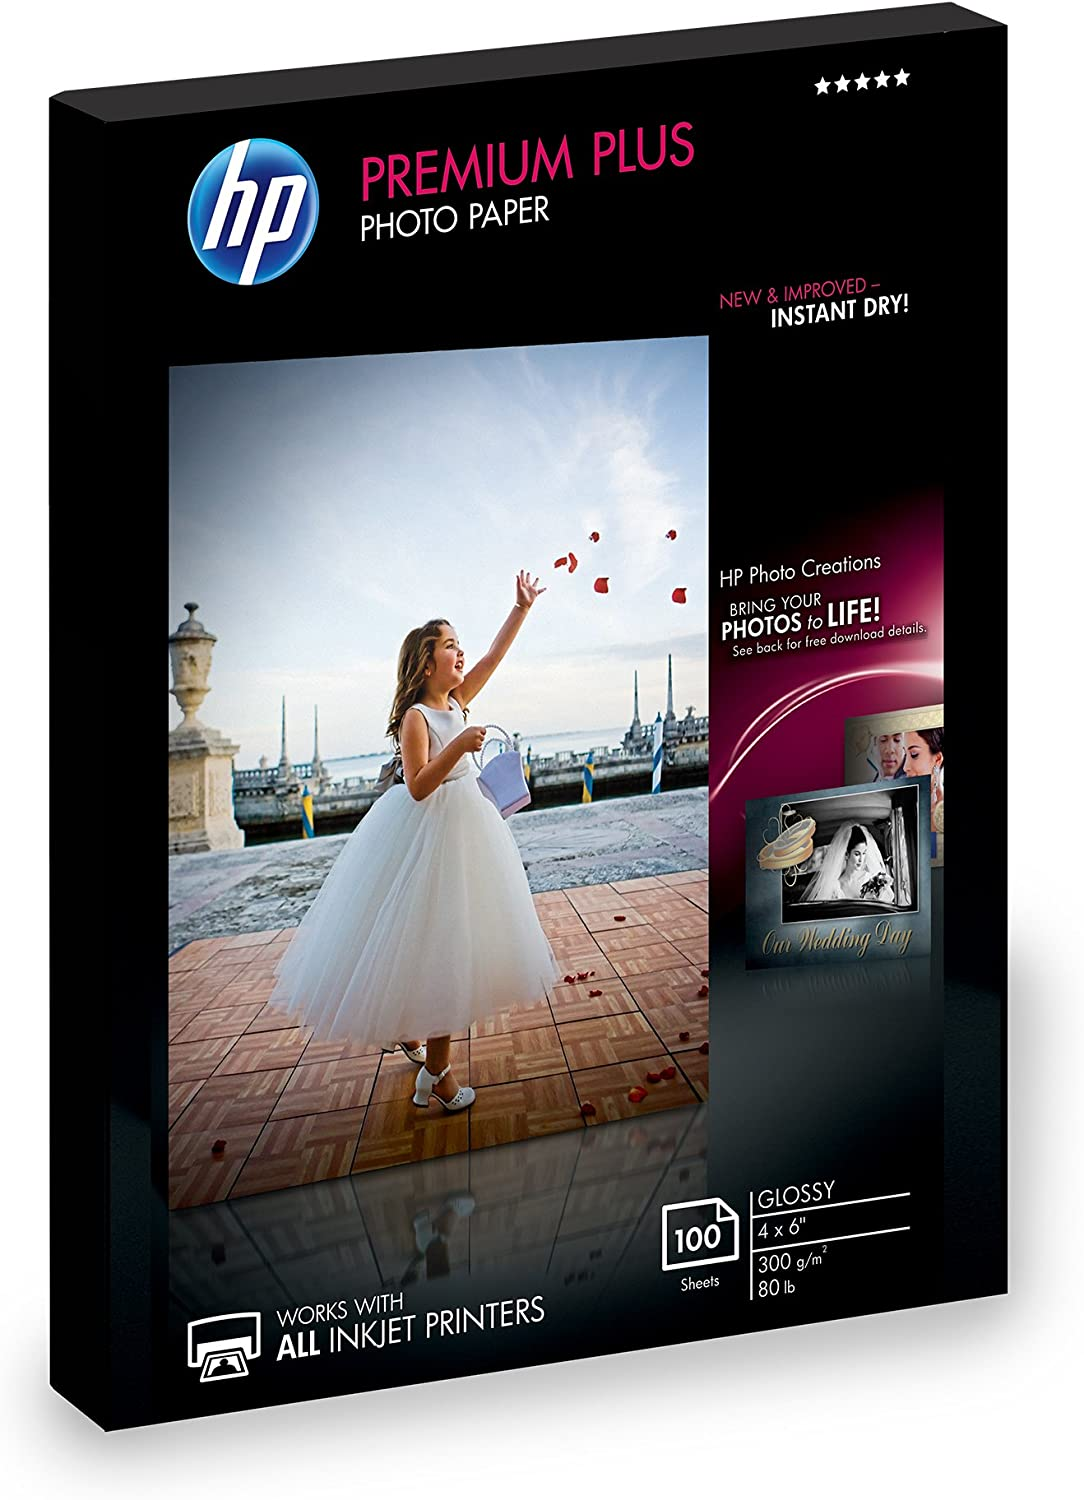 HP Photo Paper Premium Plus, Glossy, (4x6 inch), 100 sheets